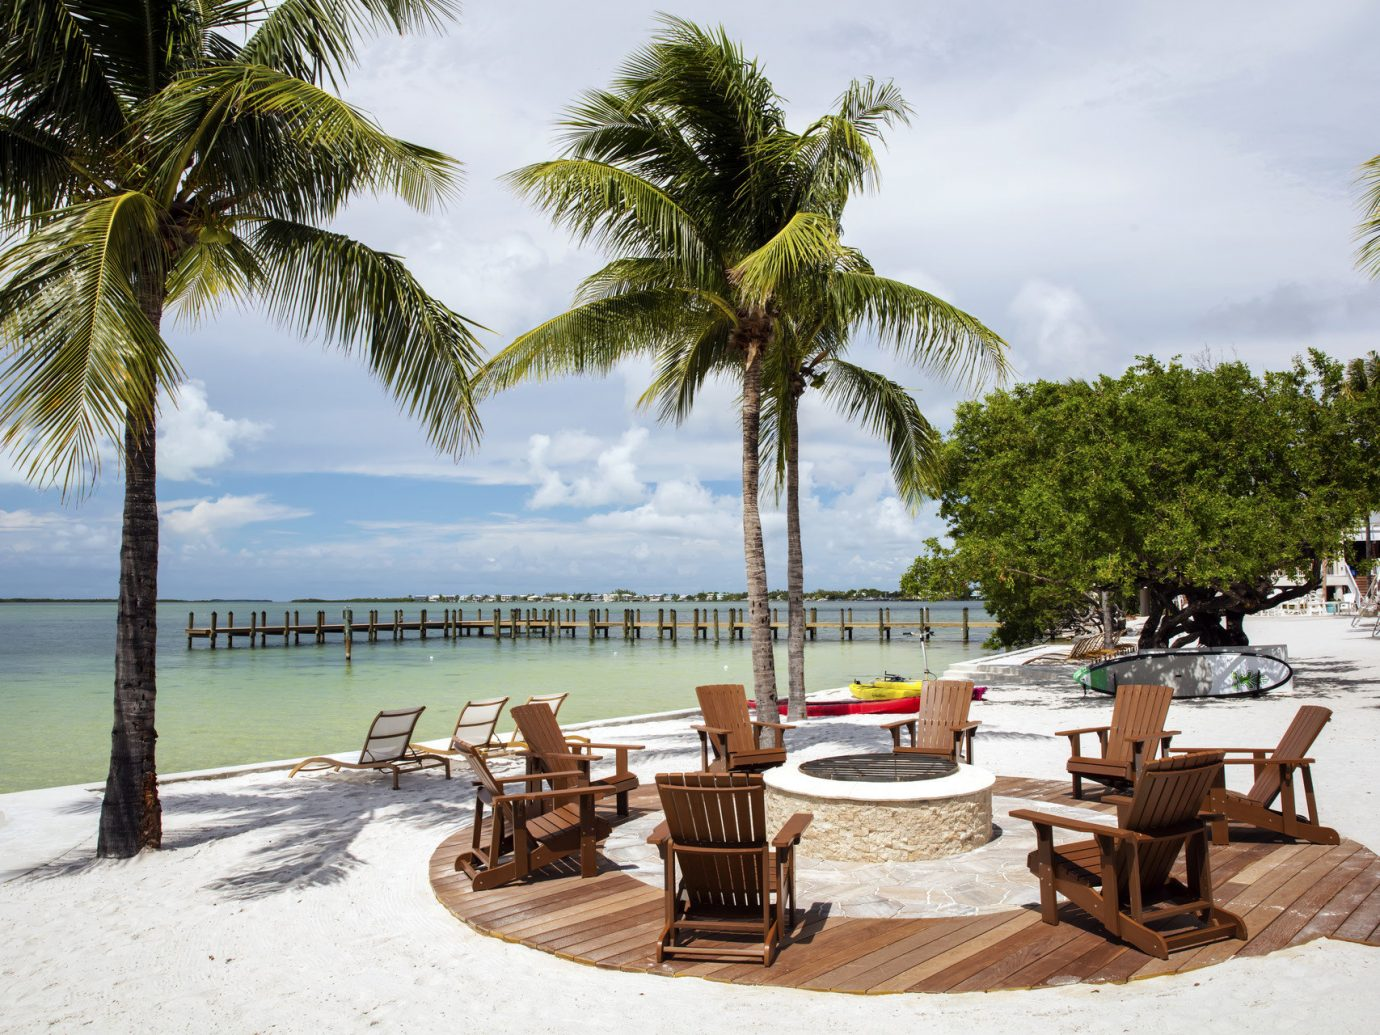 Trip Ideas tree outdoor ground Beach water chair plant palm vacation Resort caribbean arecales estate Sea palm family bay swimming pool Villa sandy lined furniture shade several